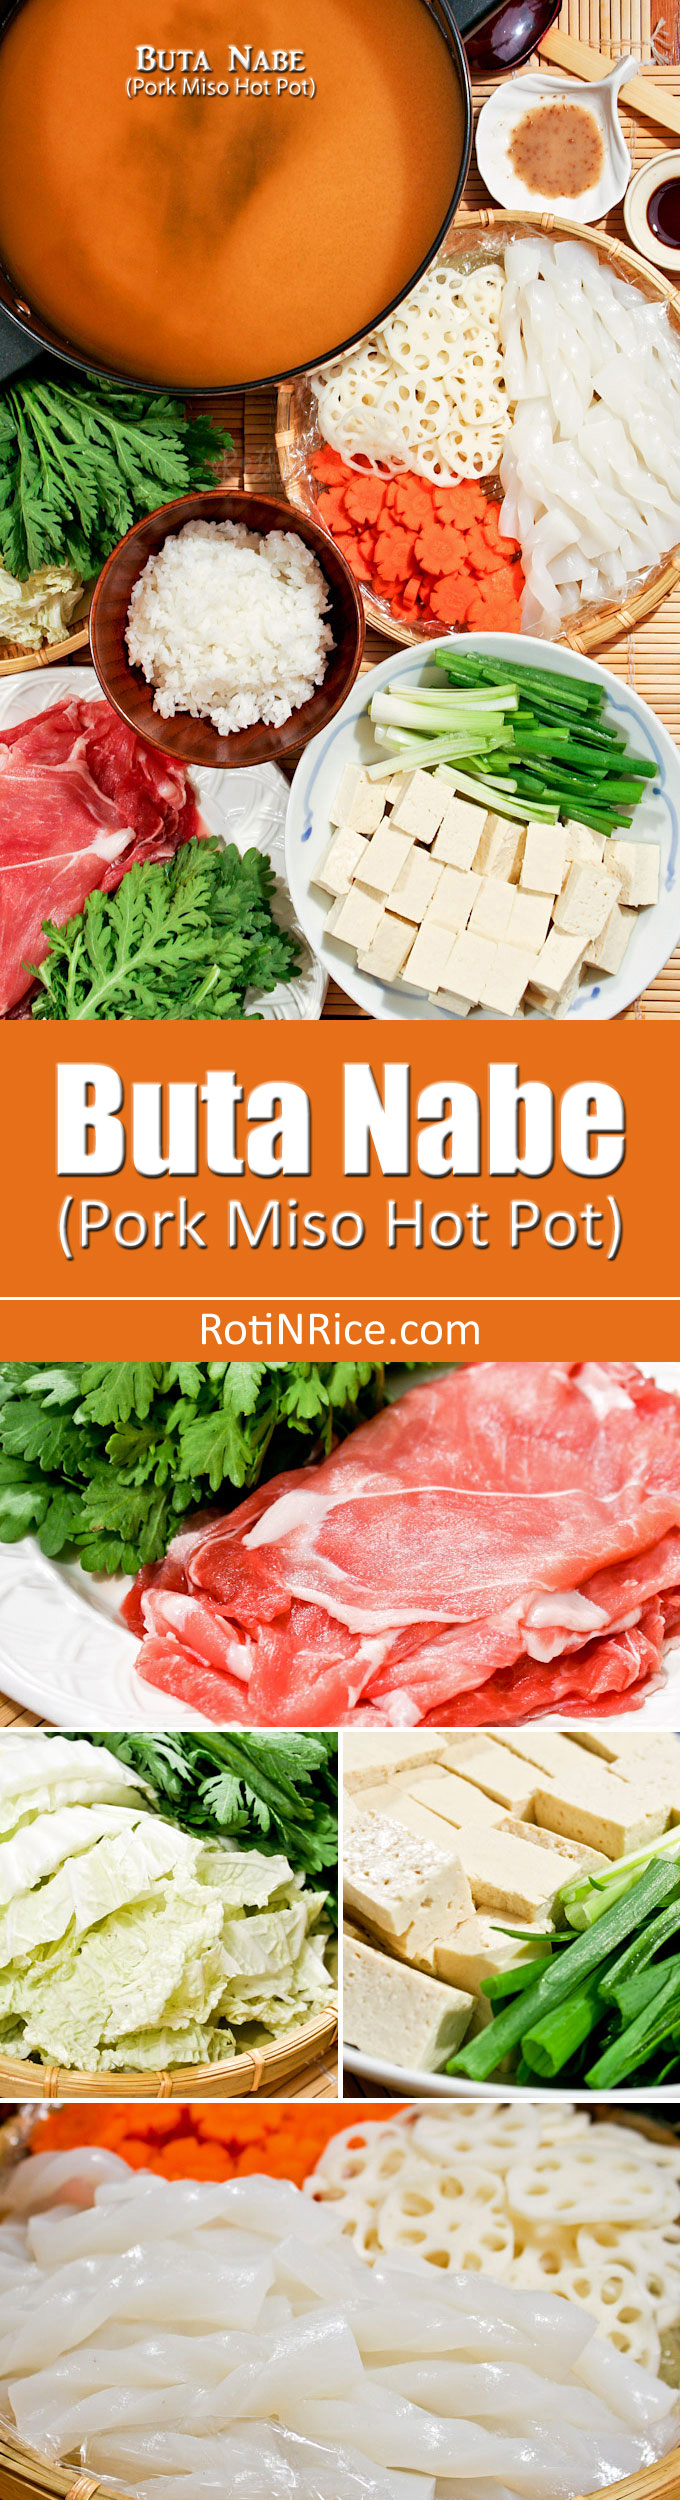 This quick and easy Buta Nabe (Pork Miso Hot Pot) can be put together in 30 minutes. Cooking is done at the table. Very warm and comforting on a cold day. | RotiNRice.com